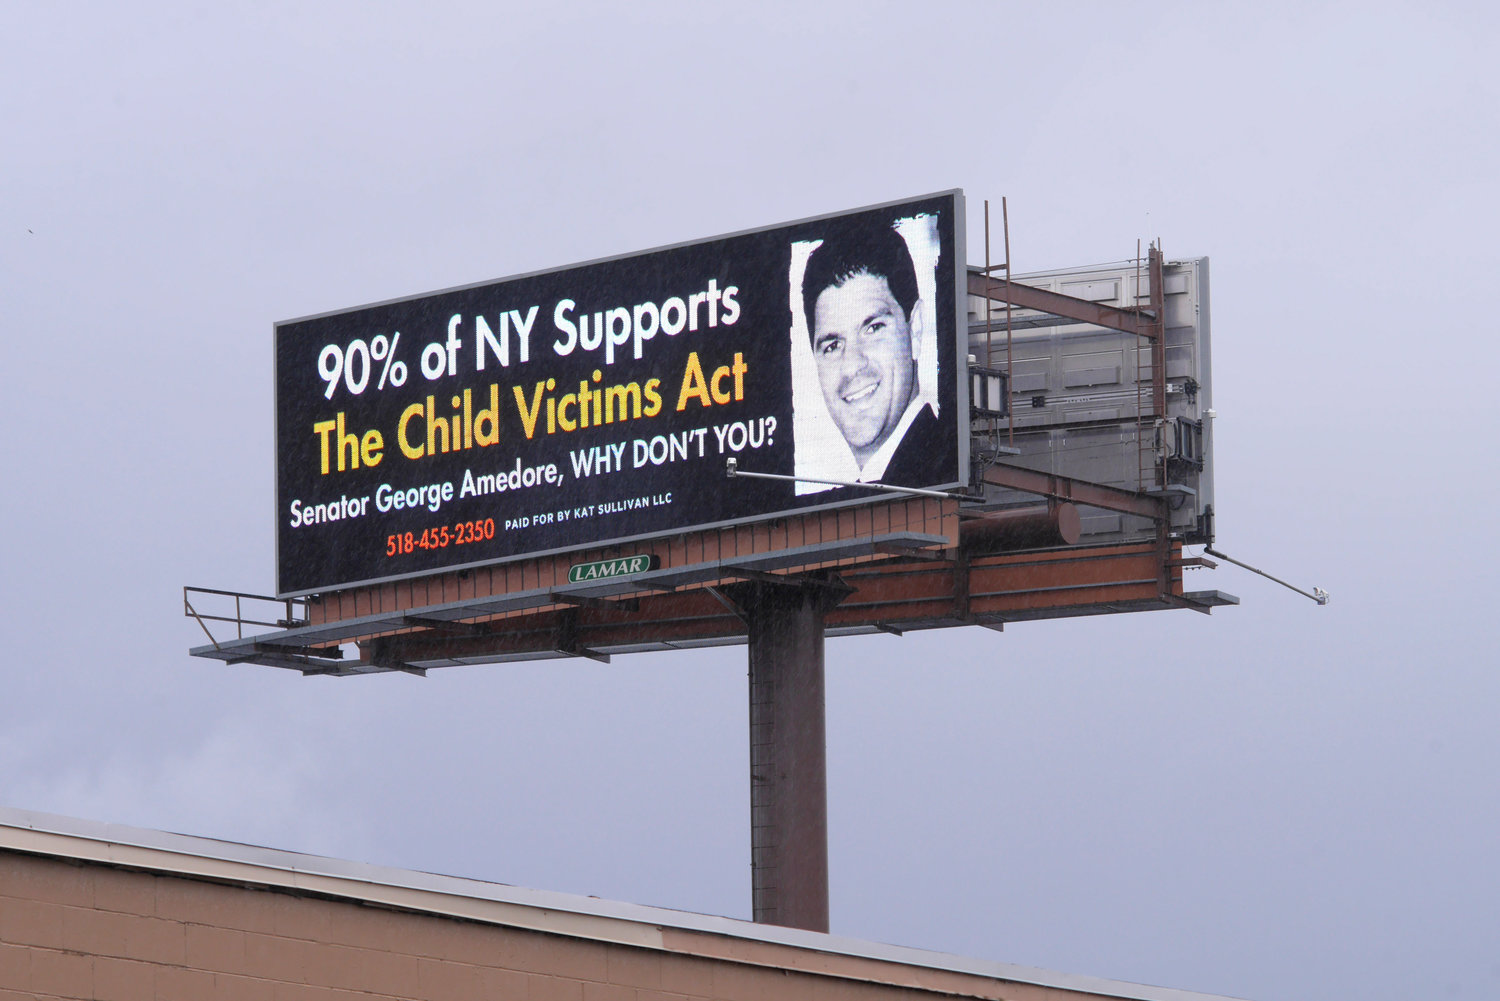 IN QUESTION — This April 2018 file photo shows a billboard in Albany with a message paid for by Kat Sullivan, a nurse who says she was assaulted by a teacher at a private school in  New York two decades ago.